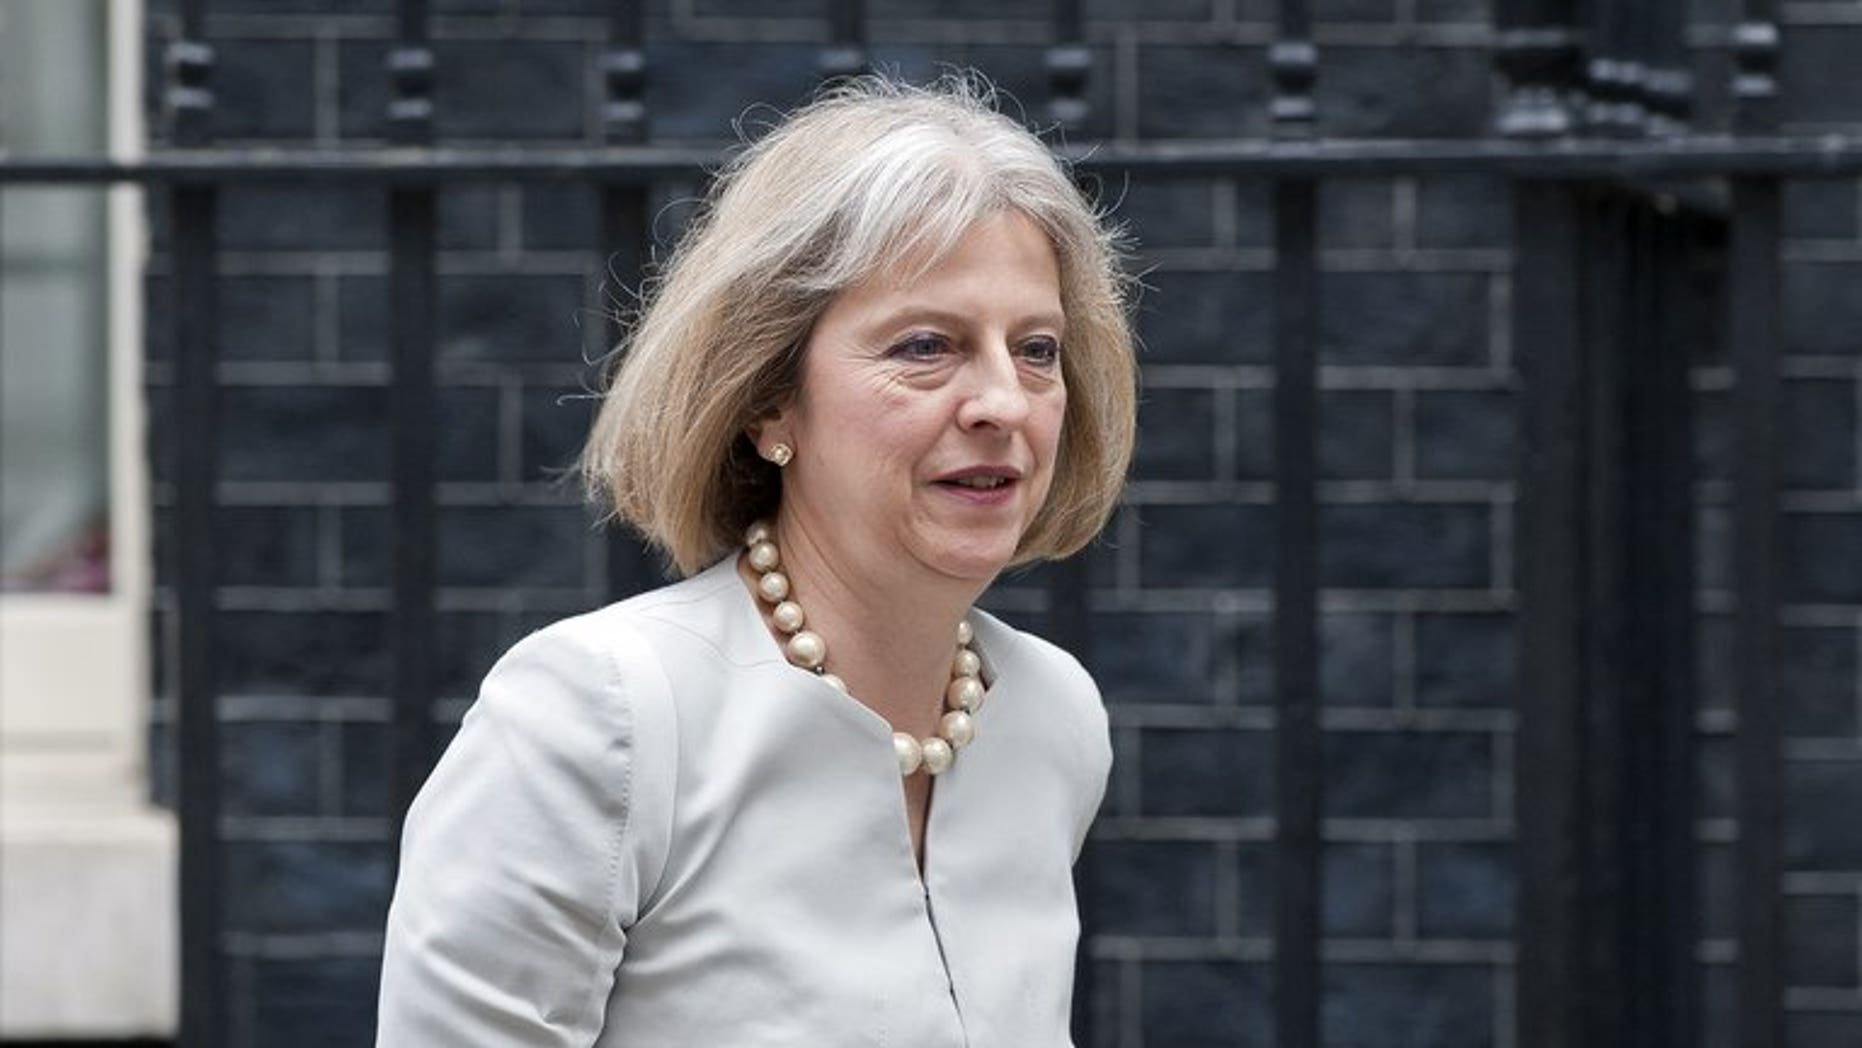 Home Secretary Theresa May leaves 10 Downing Street on June 26, 2013, after attending a cabinet meeting. May has been diagnosed with type 1 diabetes, a serious form of the condition that means she will need daily insulin injections for the rest of her life.